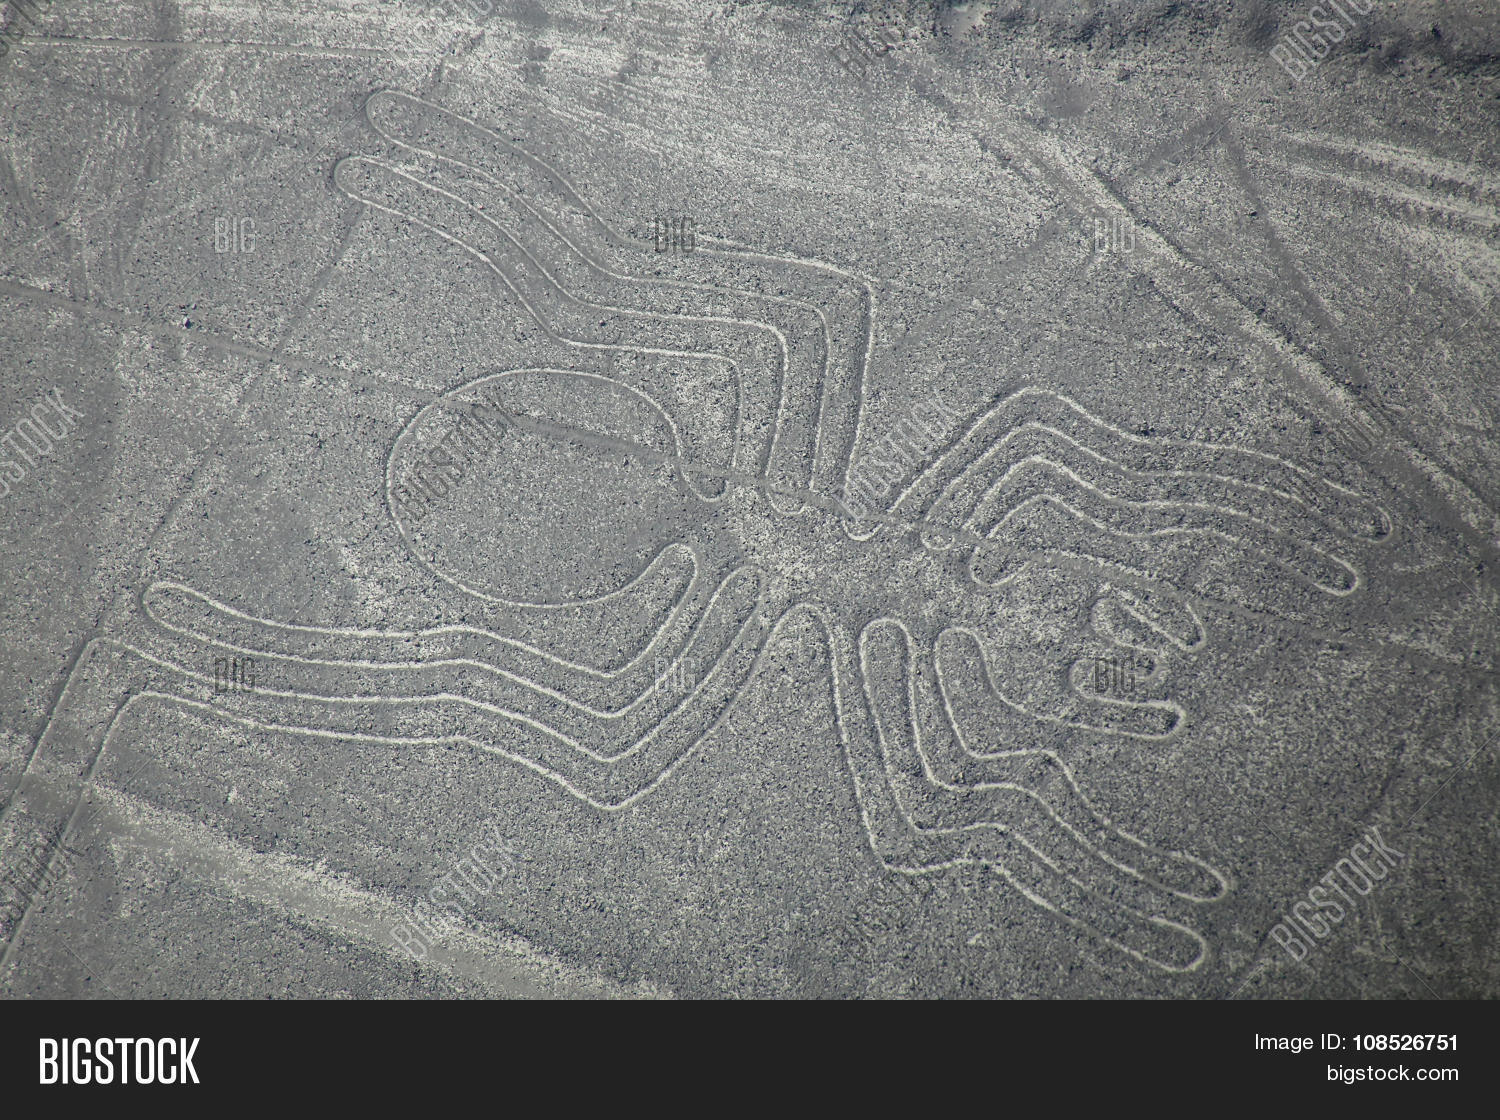 Aerial view of Nazca Lines - Spider geoglyph Peru. The Lines were designated as a UNESCO World Heritage Site in 1994.